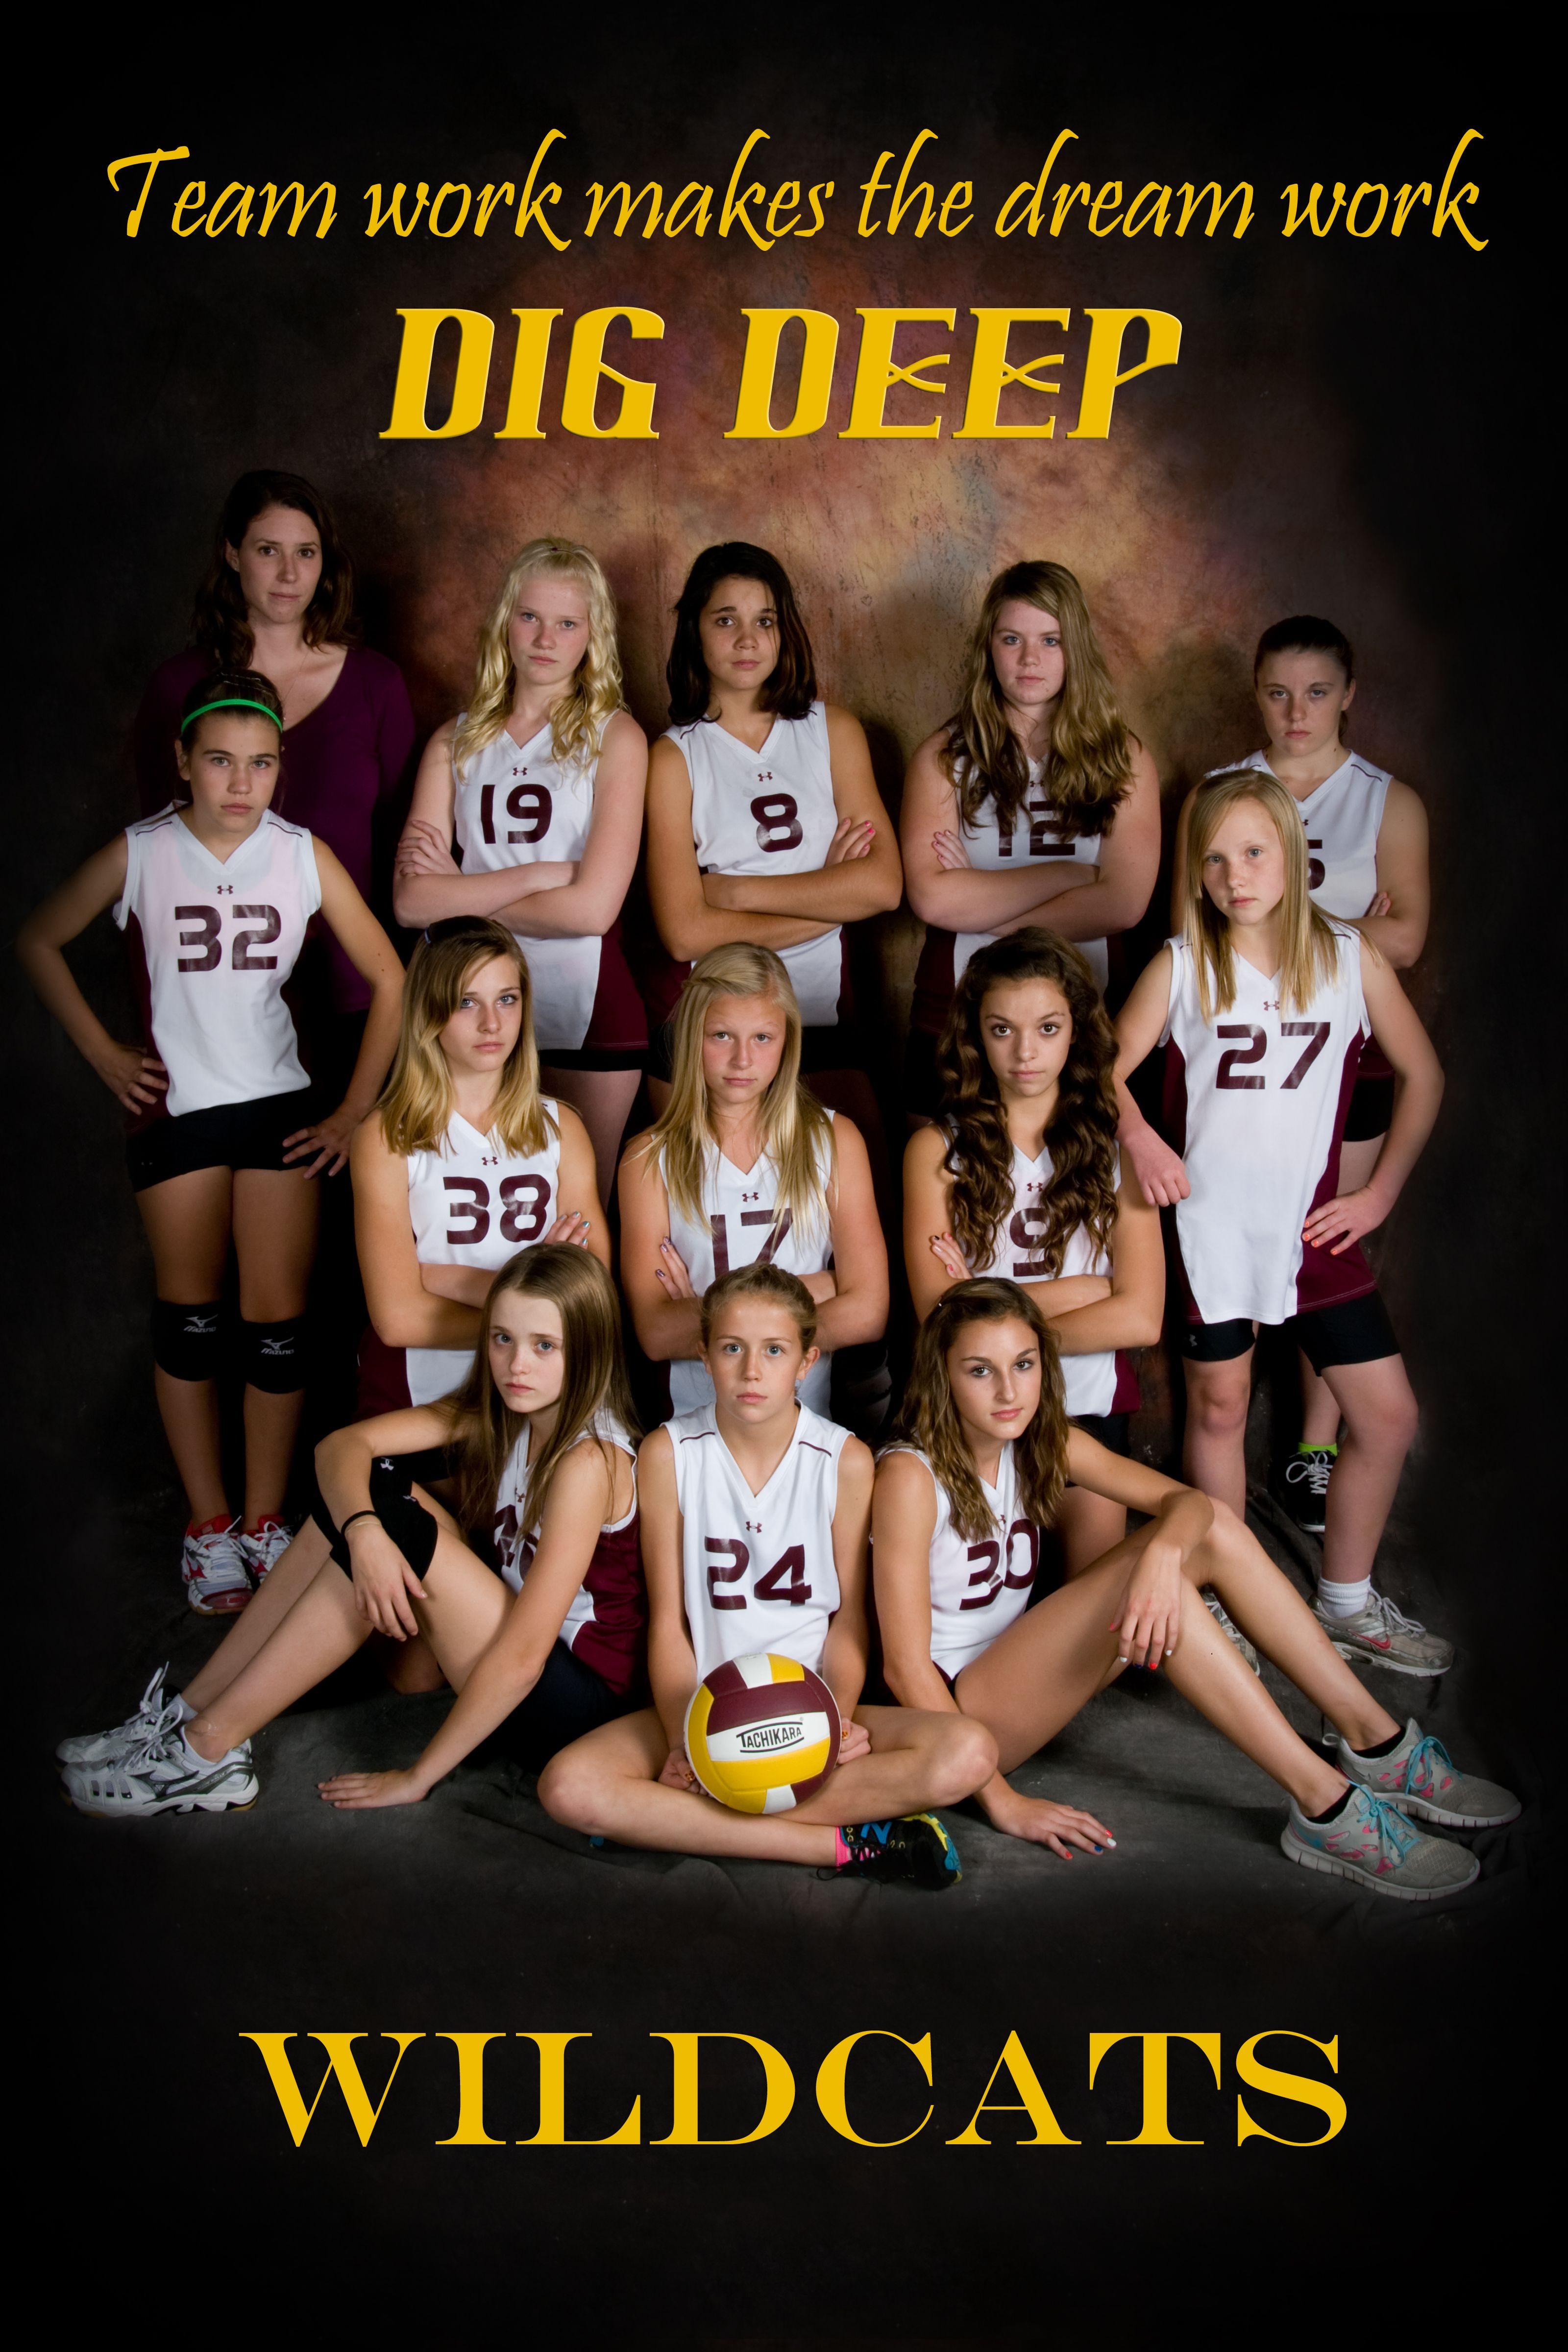 Volleyball Posters Printed These 4x6 And Put On The Girls Lockers Before The Game Embellis Volleyball Photography Volleyball Team Pictures Volleyball Photos